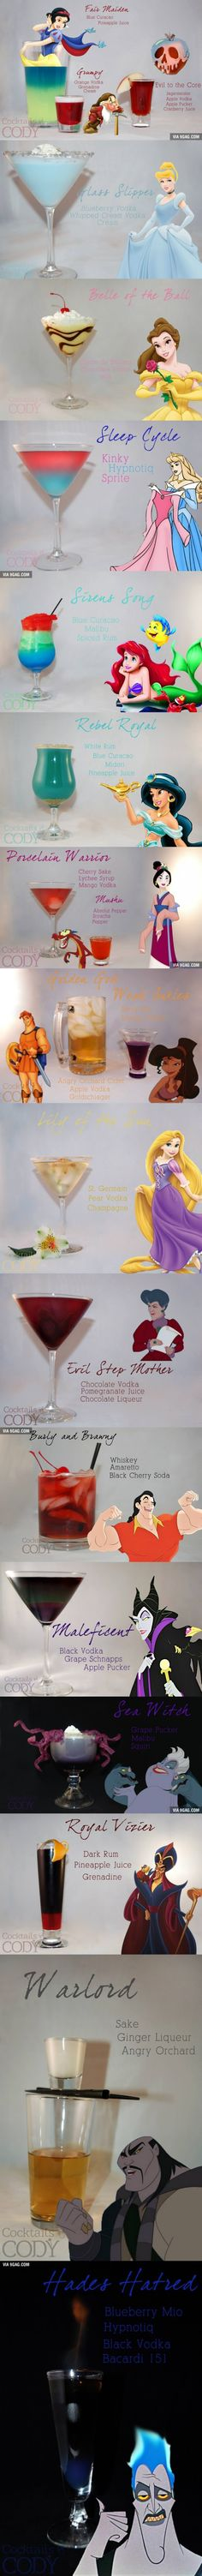 29 Disney Themed Cocktails You Will Want To Try - Interesting.